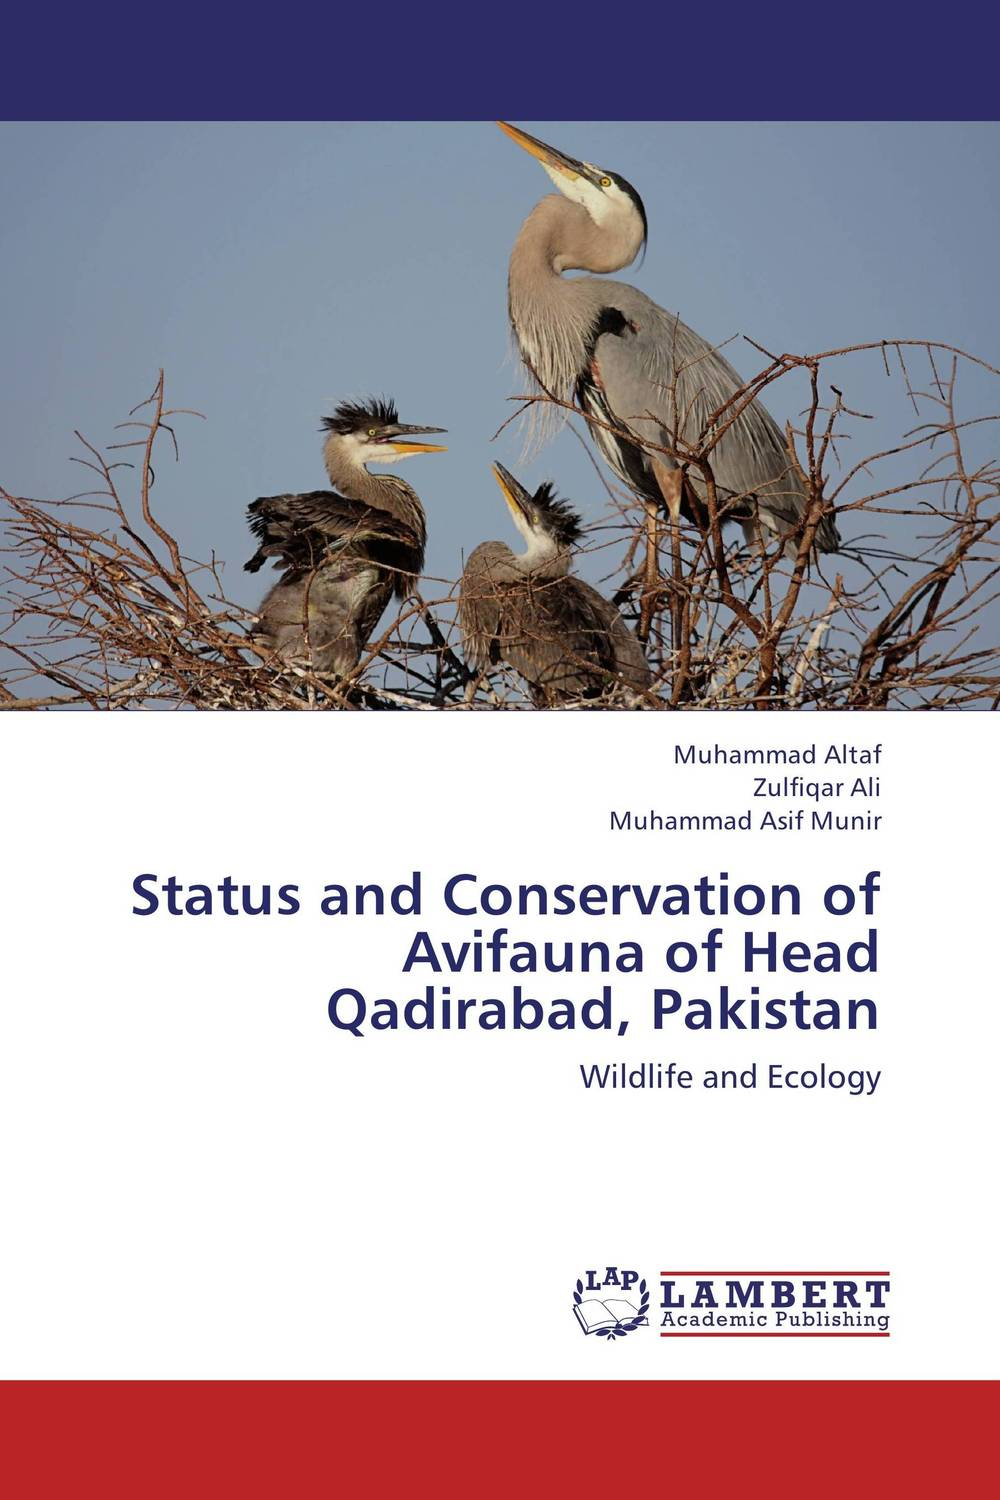 Status and Conservation of Avifauna of Head Qadirabad, Pakistan violet ugrat ways to heaven colonization of mars i